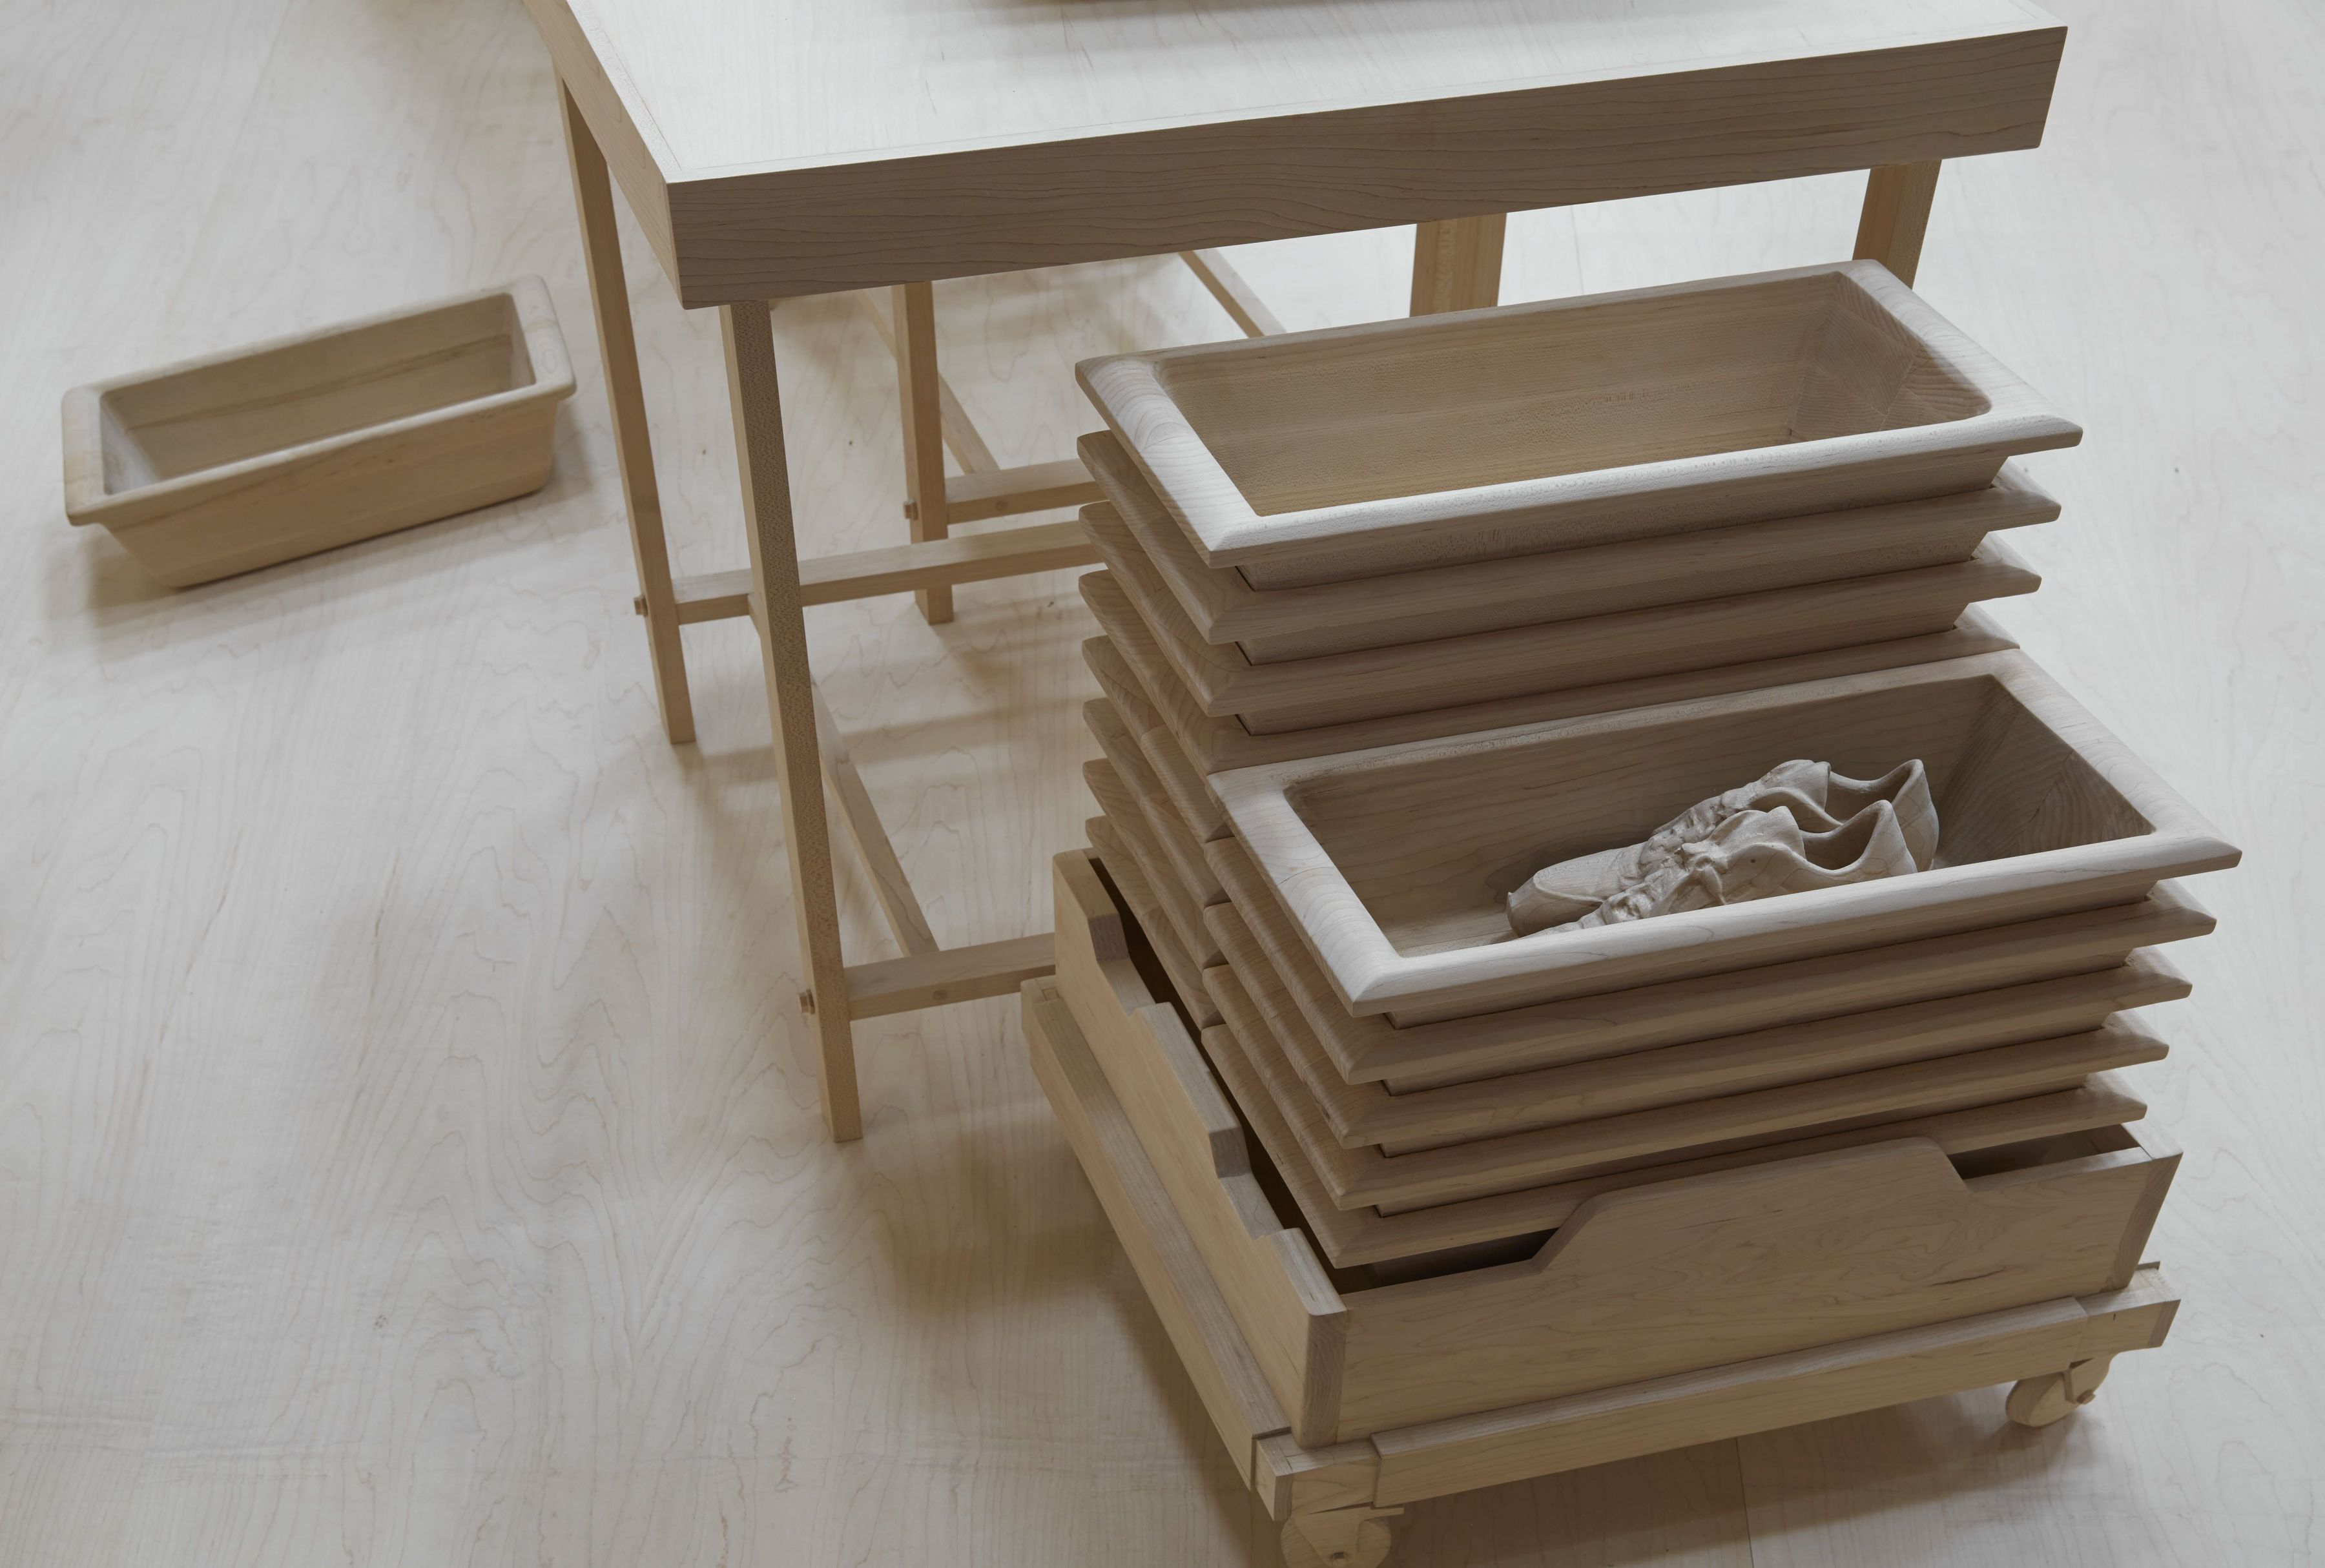 wood model of airport security bins by roxy paine